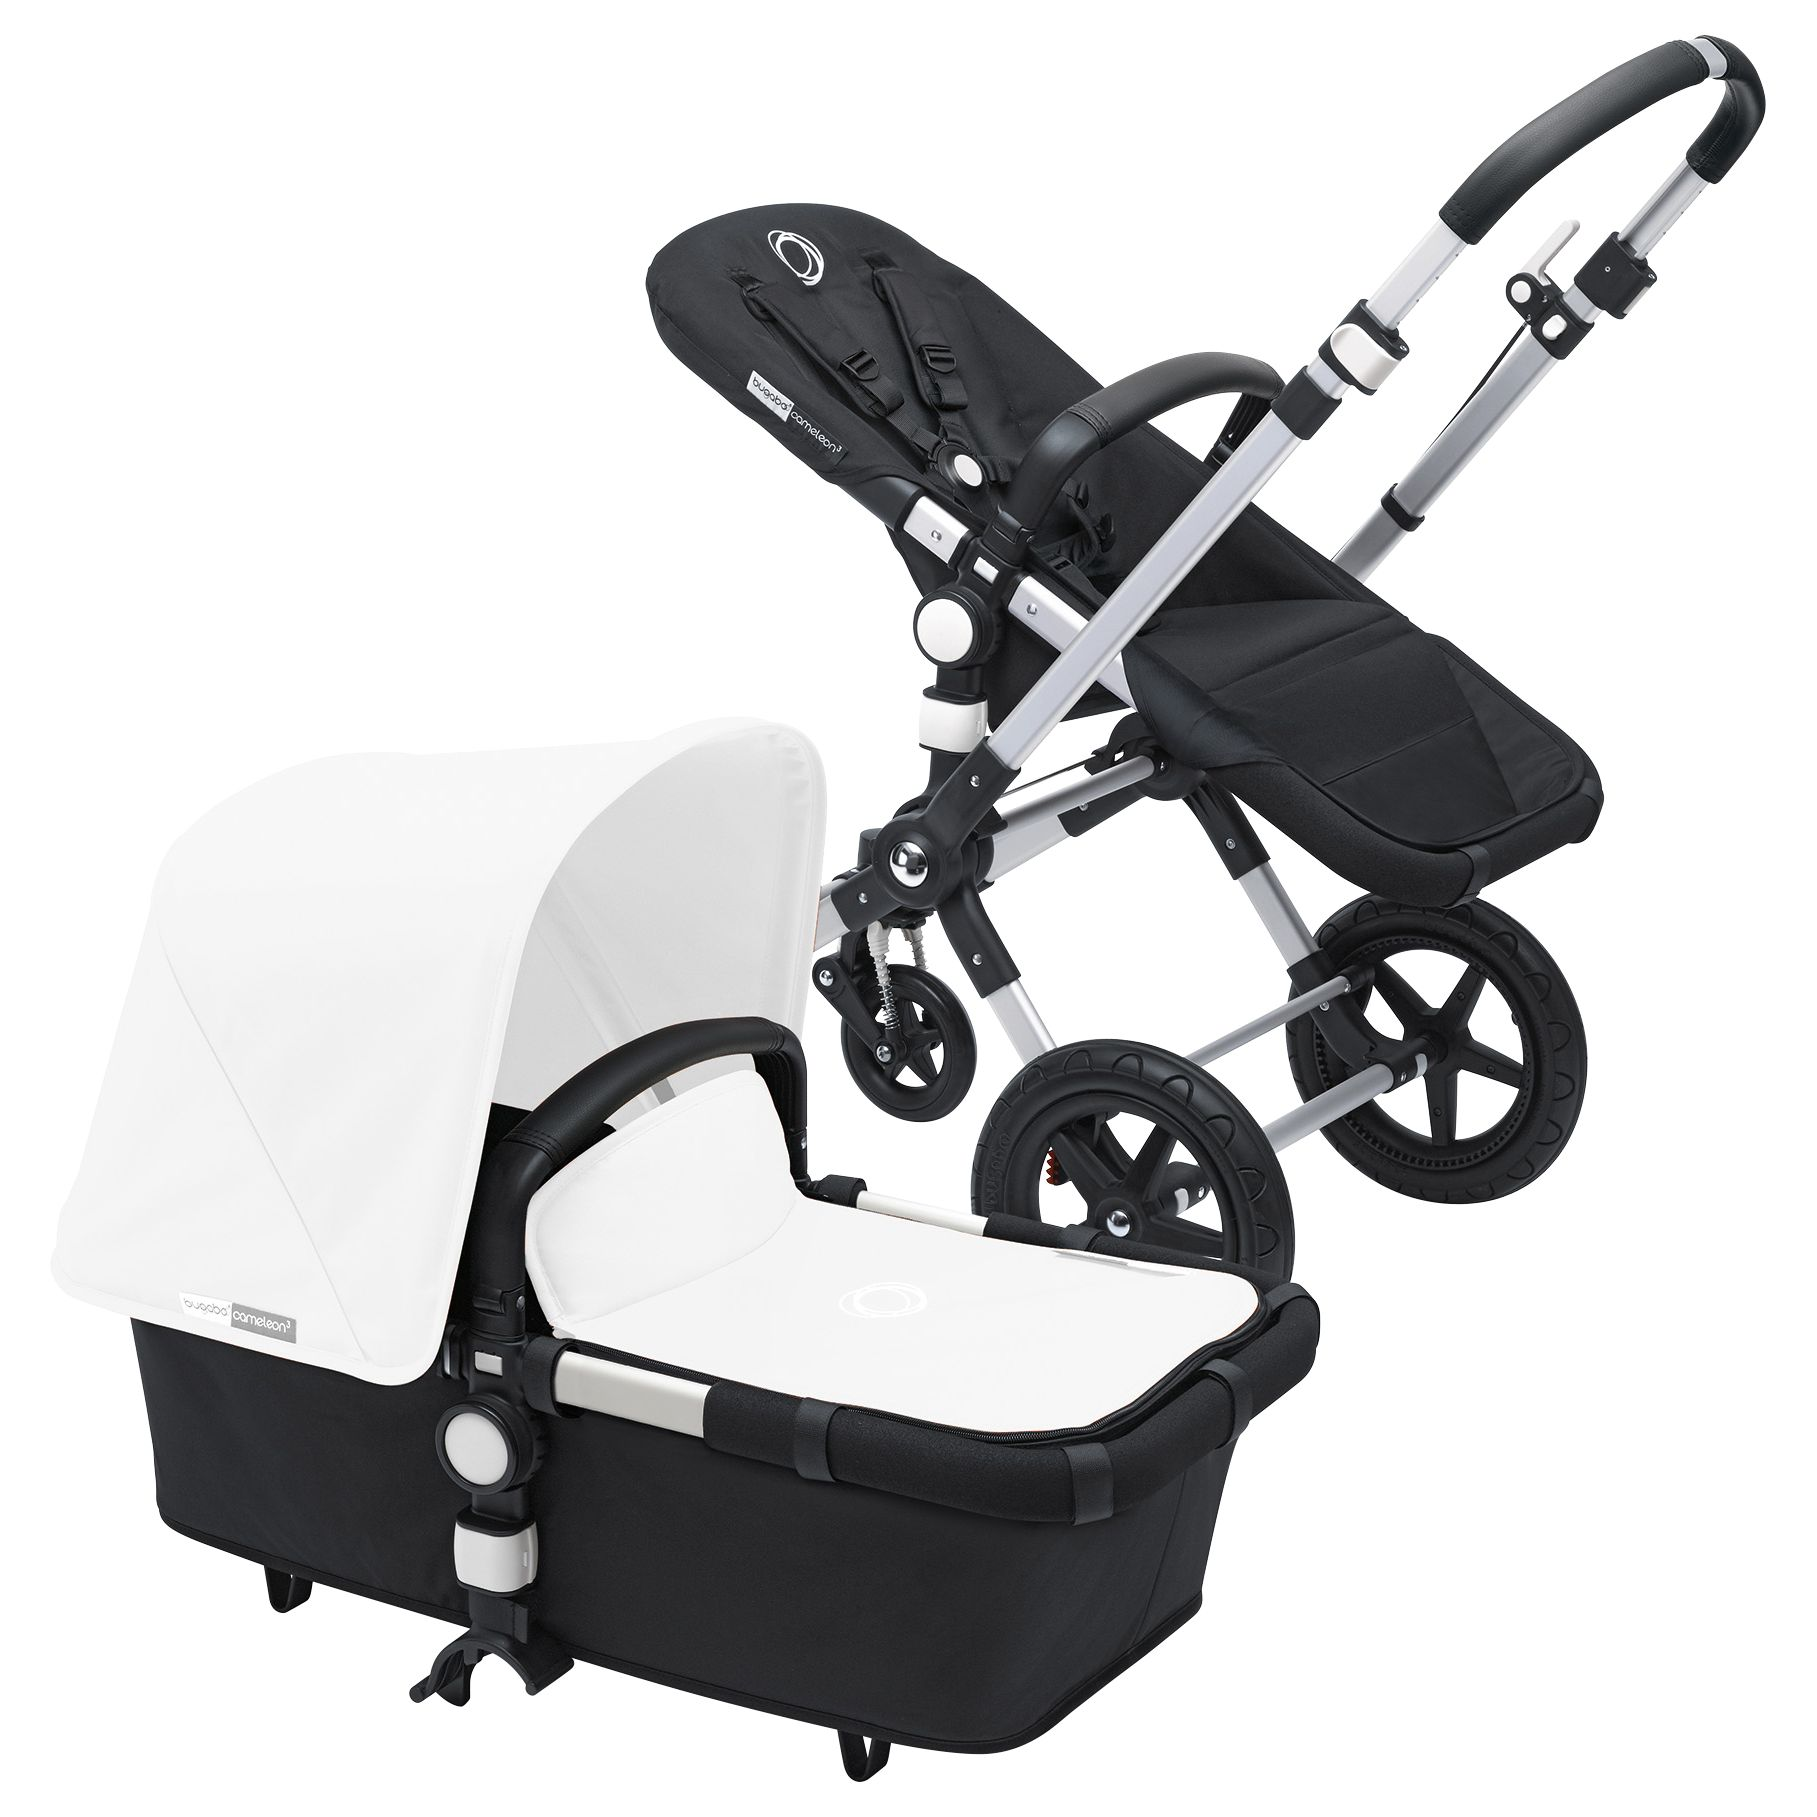 Bugaboo Bugaboo Cameleon3 Pushchair Base Unit and Carrycot 2016, Aluminum/Black